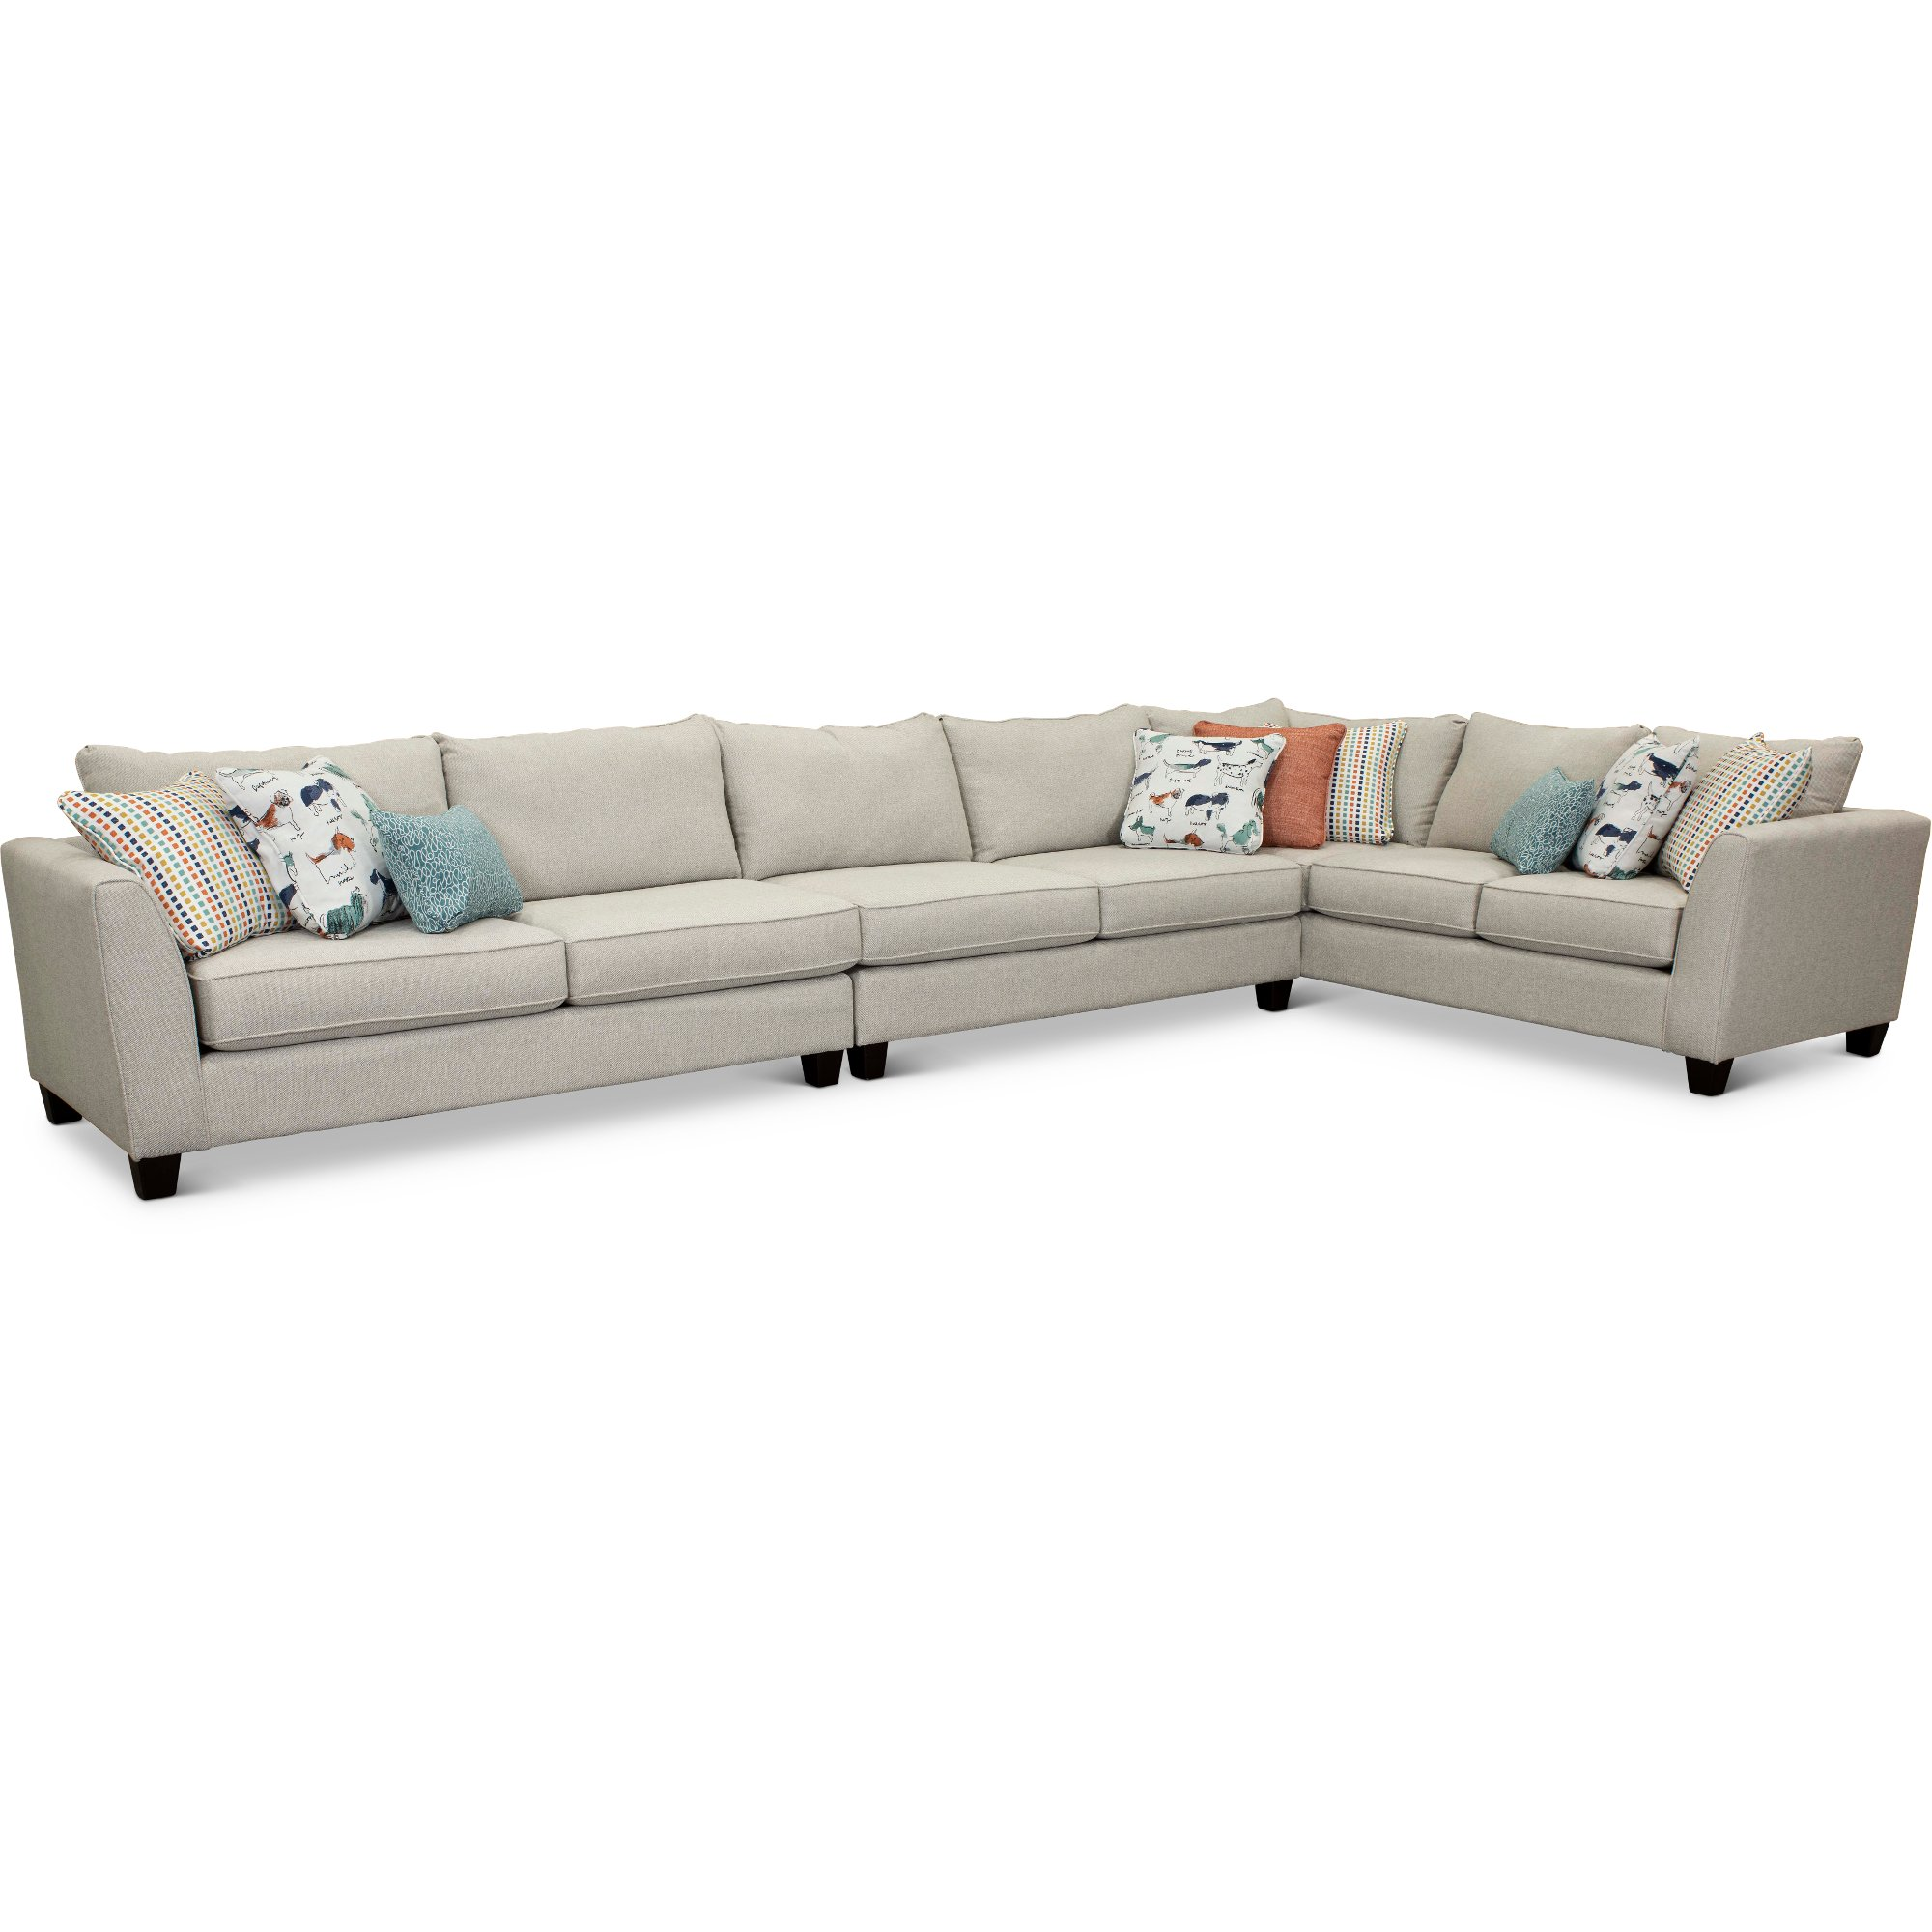 Stone 3 Piece Sectional Sofa With Laf